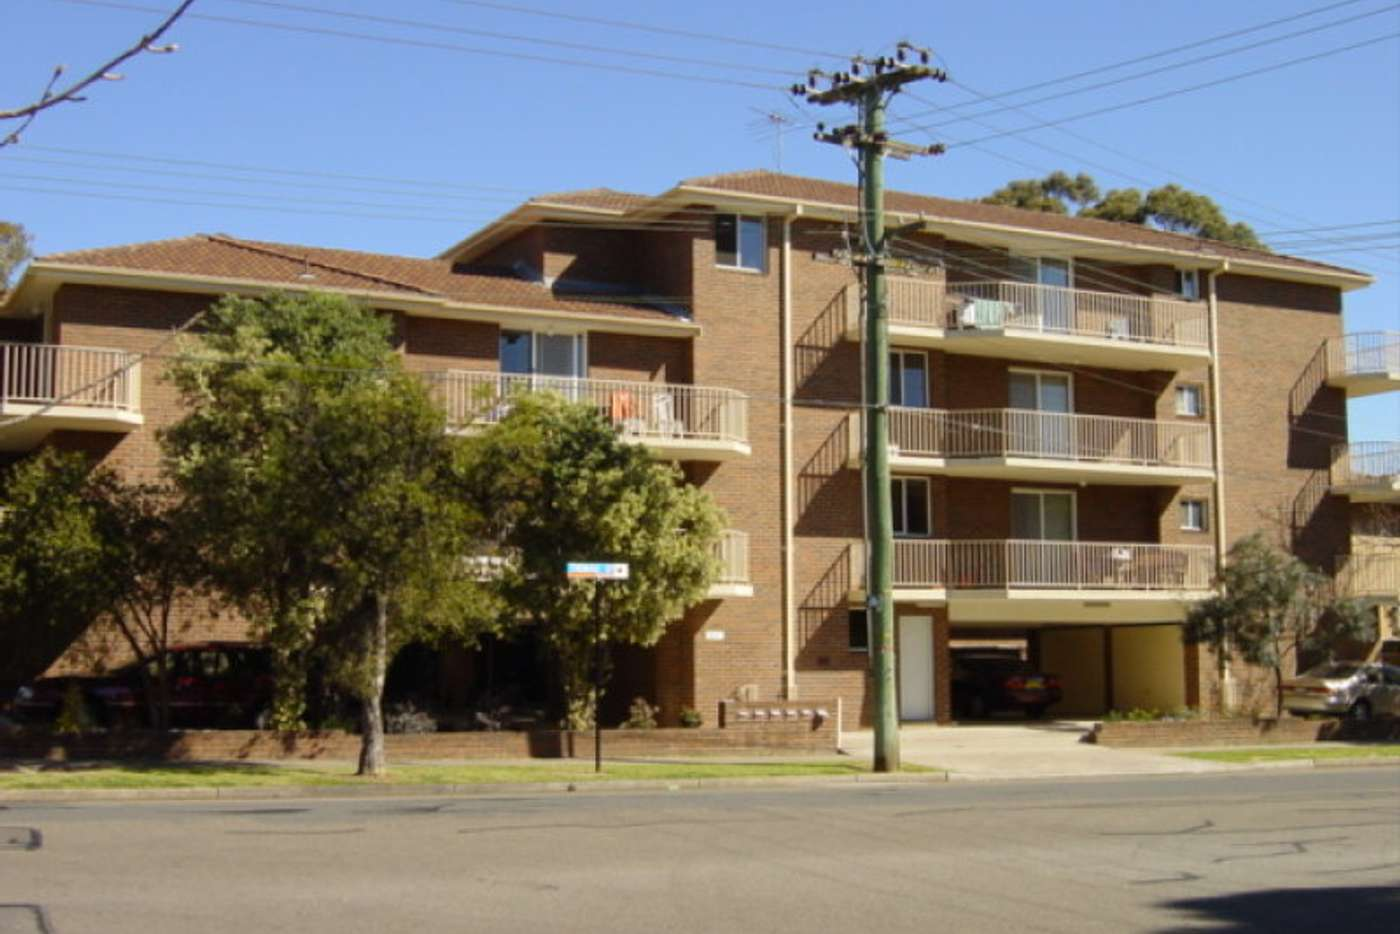 Main view of Homely unit listing, 31 Stewart Street, Parramatta NSW 2150